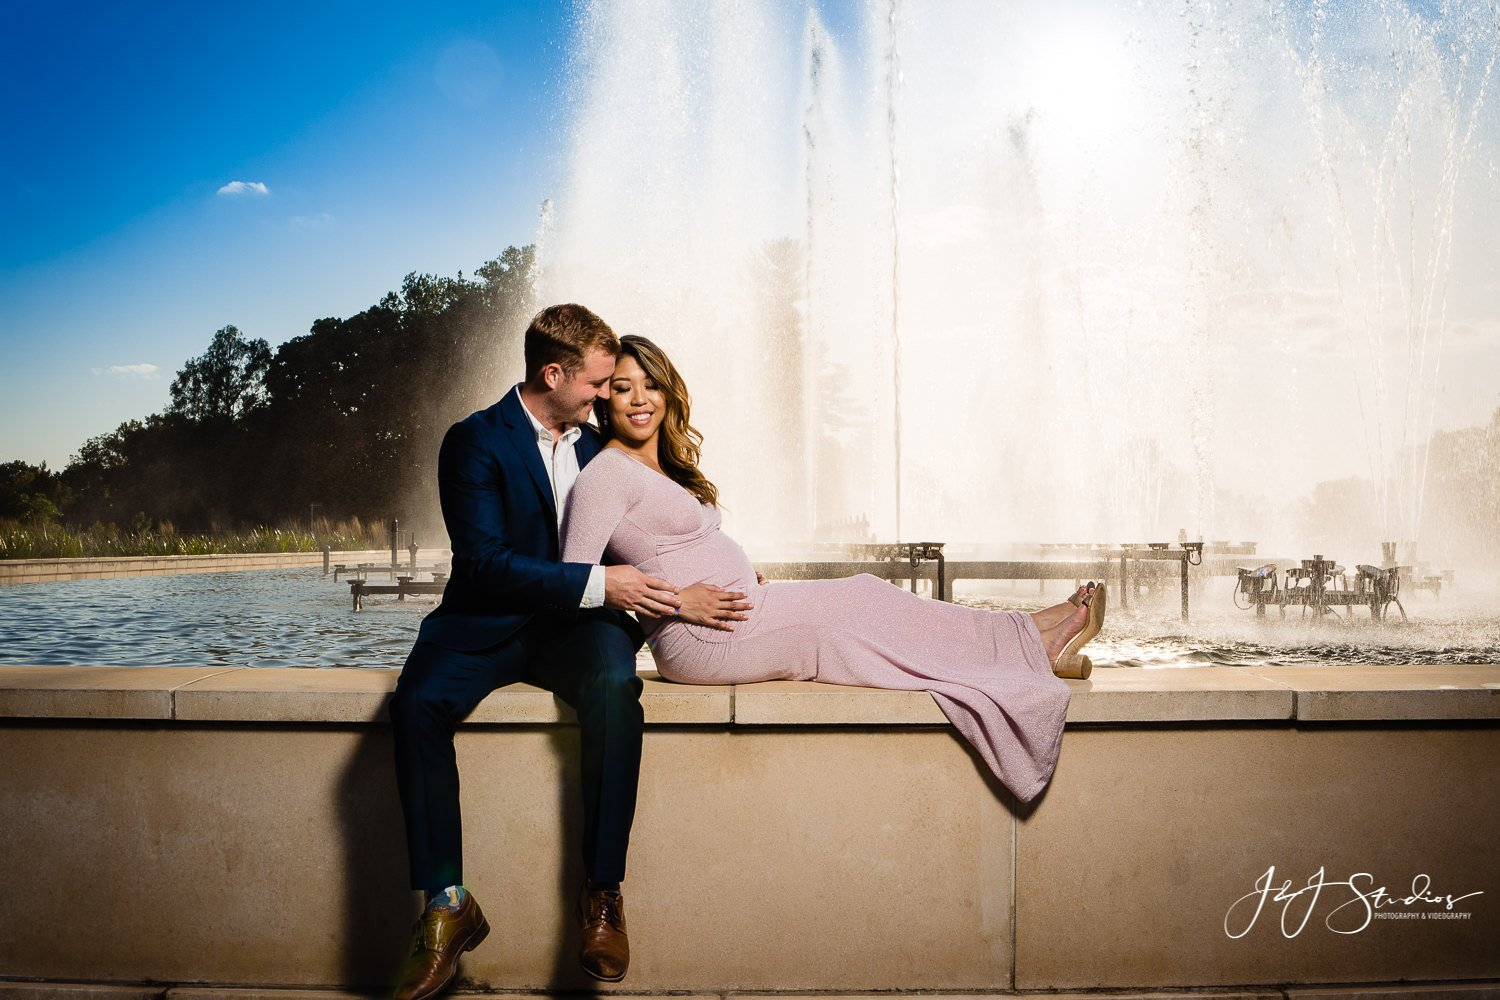 longwood gardens fountain maternity photo